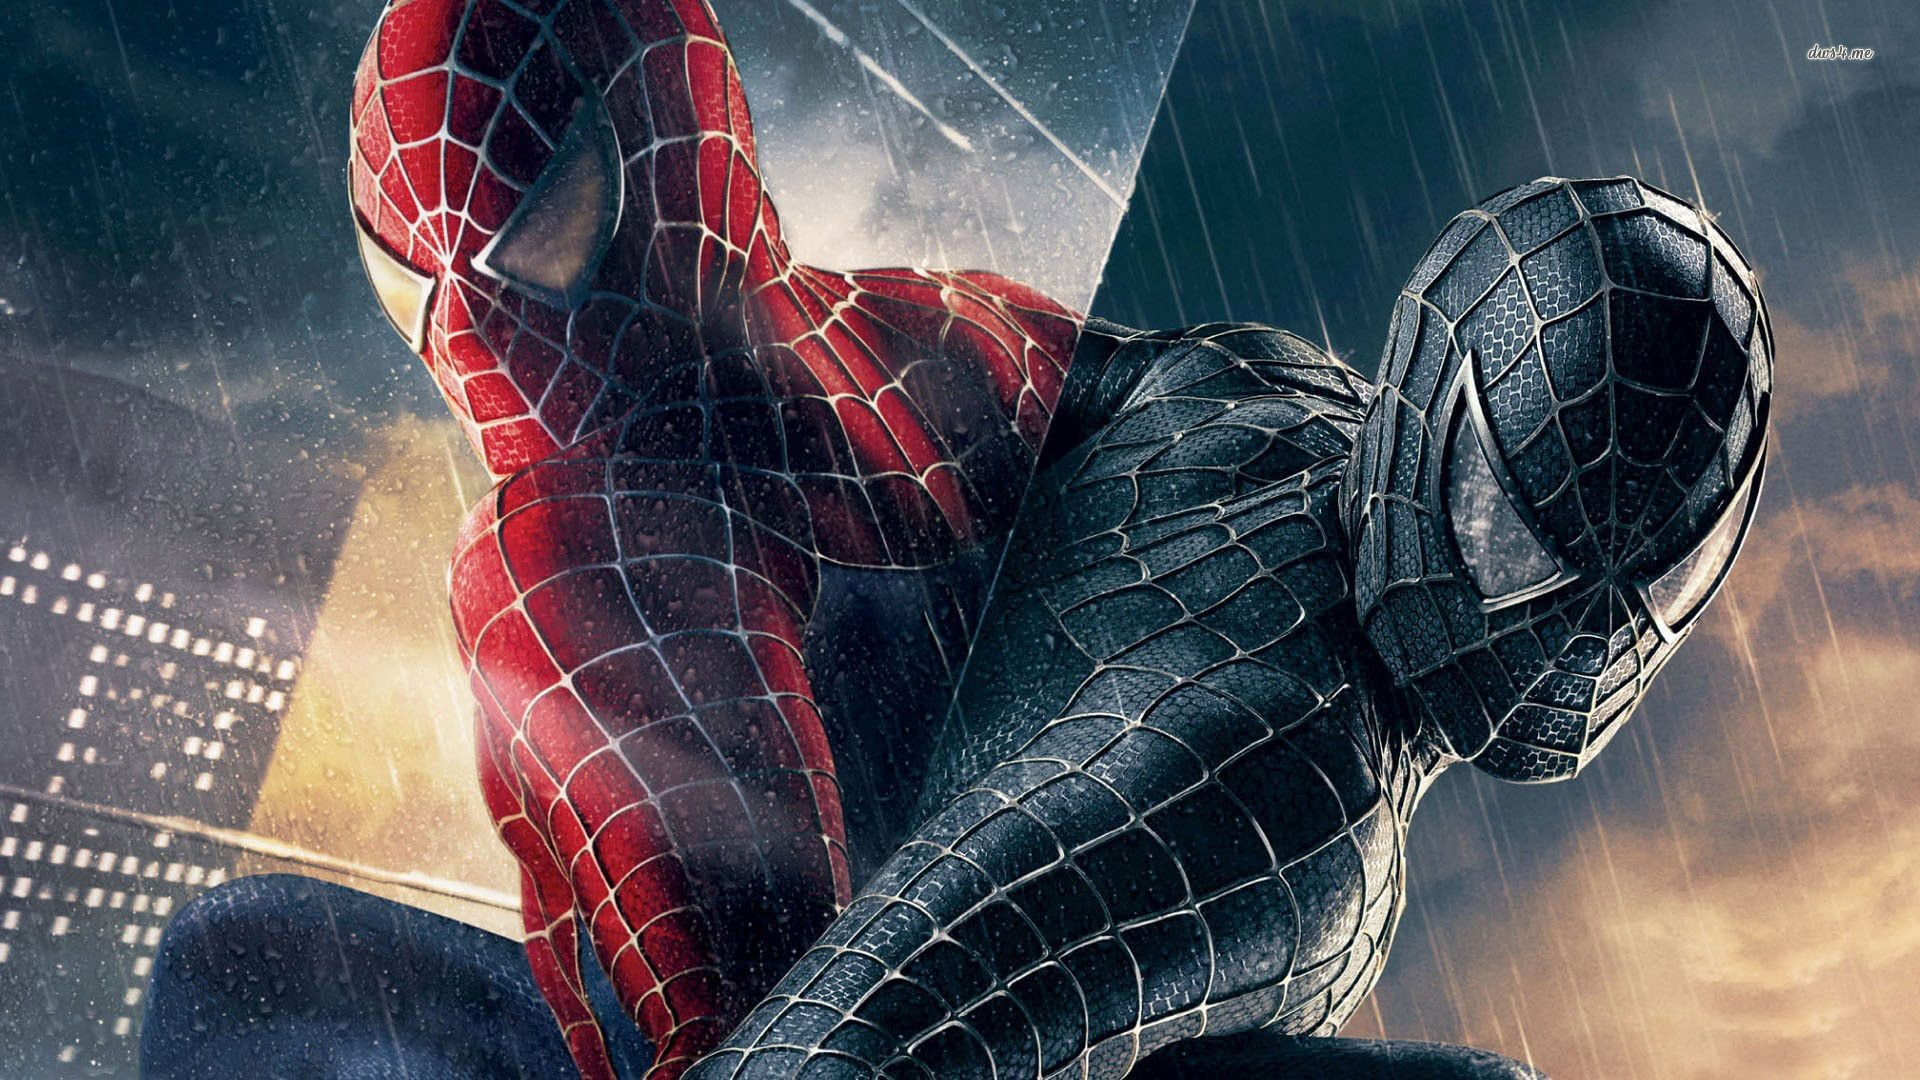 Spiderman 3 Hd Wallpapers 1080p: 4K Spiderman Wallpaper (55+ Images